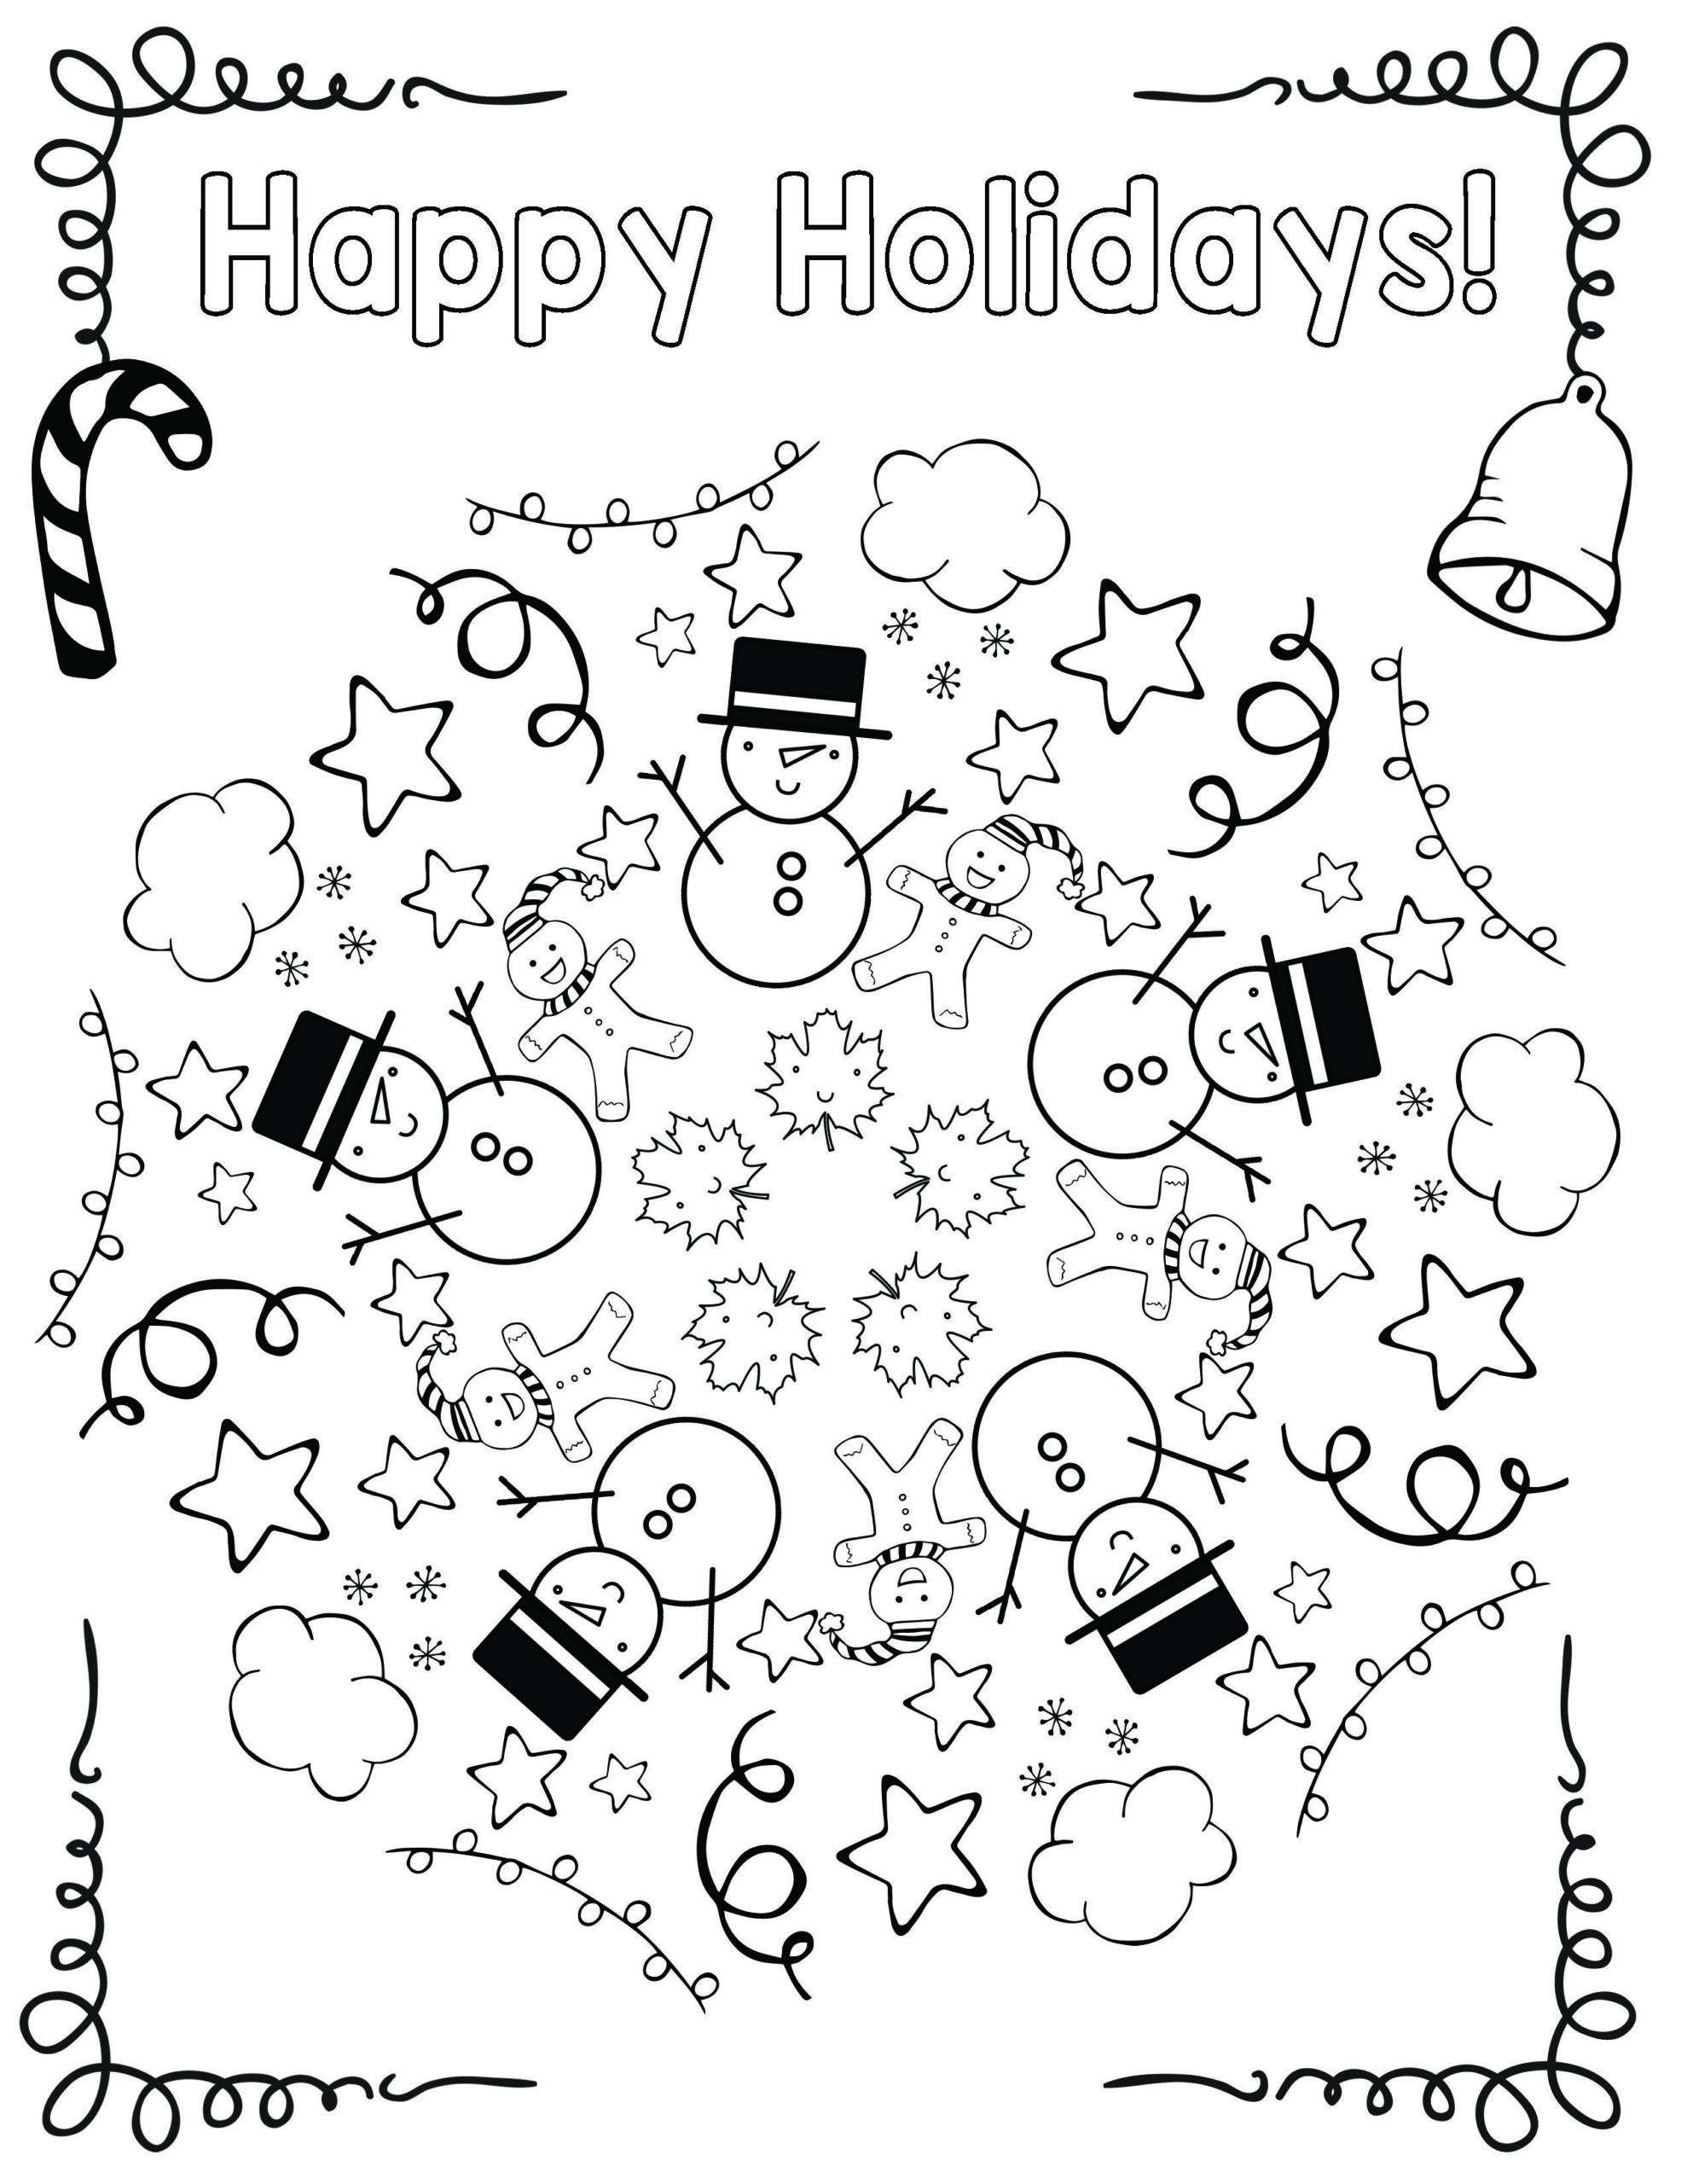 1st Grade Health Worksheets Free Holiday Coloring Mandala Art Lessons Elementary First